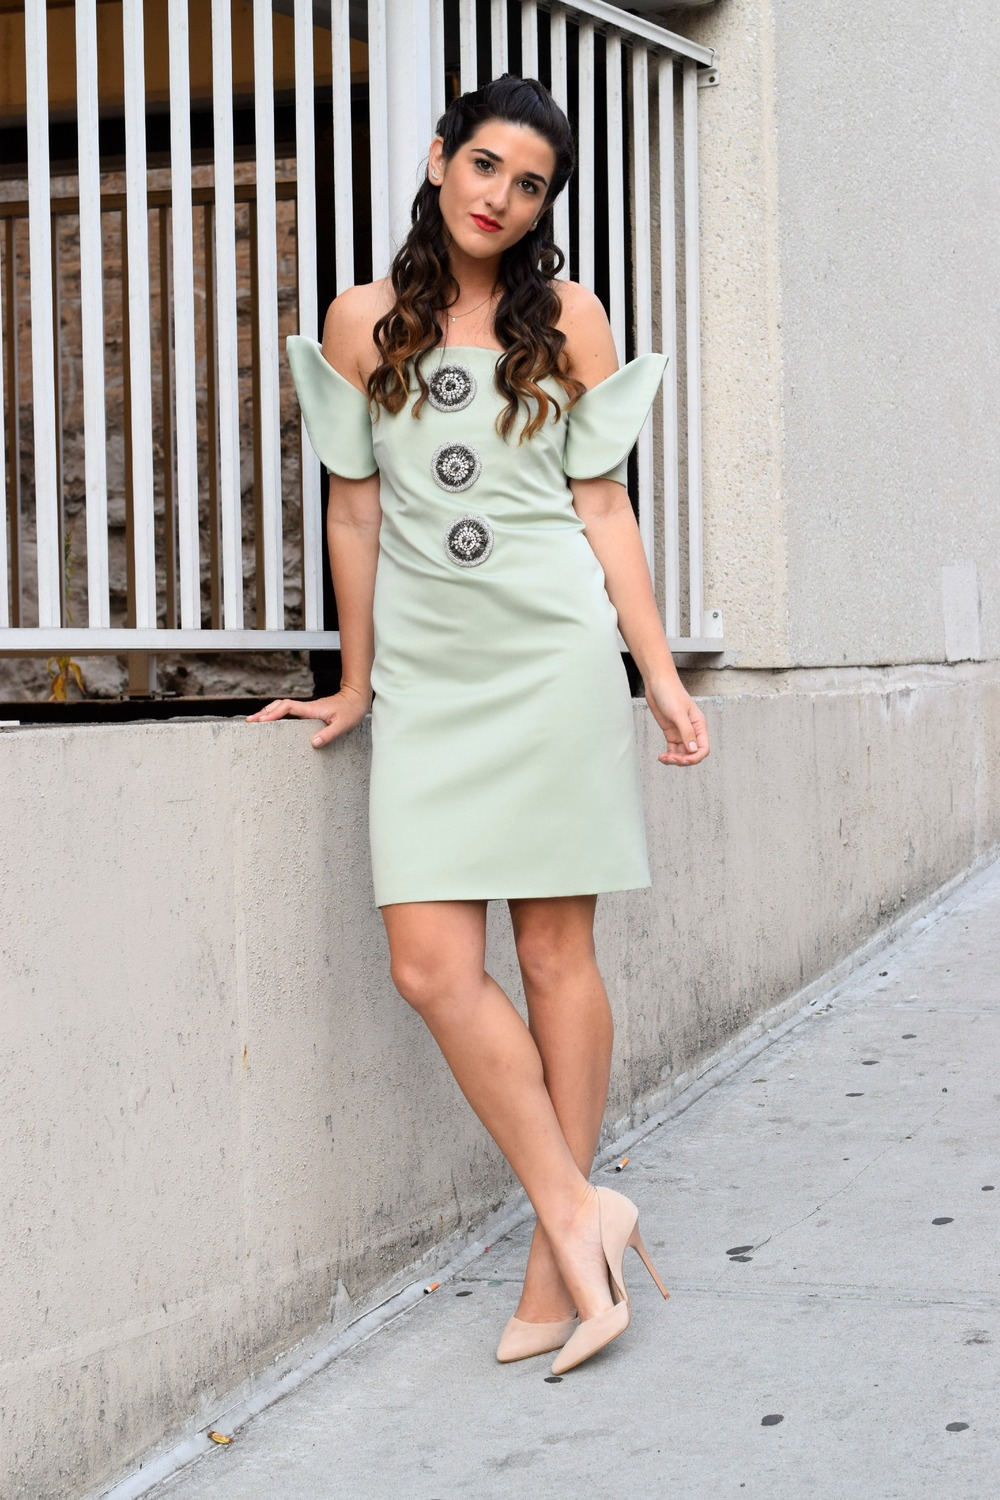 Sage Terno Cocktail Dress Mestiza NY Louboutins & Love Fashion Blog Esther Santer Street Style Blogger NYC Photoshoot Earrings Steve Madden Heels Pumps Hair Brunette Model Girl Women Trendy Outfit Shop OOTD Look Inspiration Inspo Beauty Pretty Braids.JPG